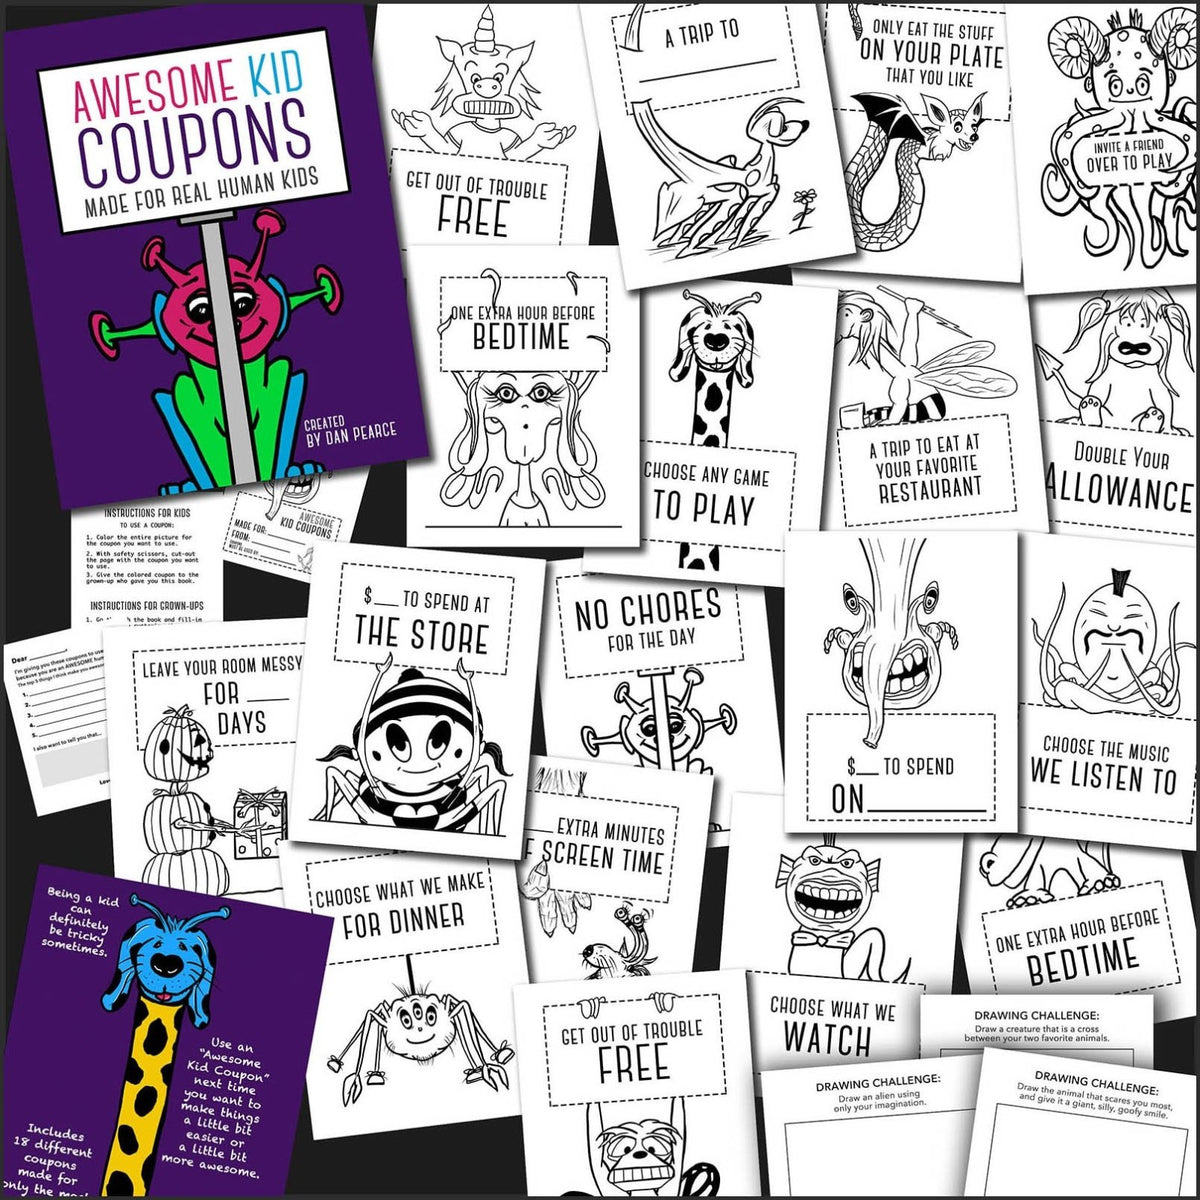 Awesome Kid Coupons And Coloring Book Made For Real Human Kids Dan Pearce Creative Shop